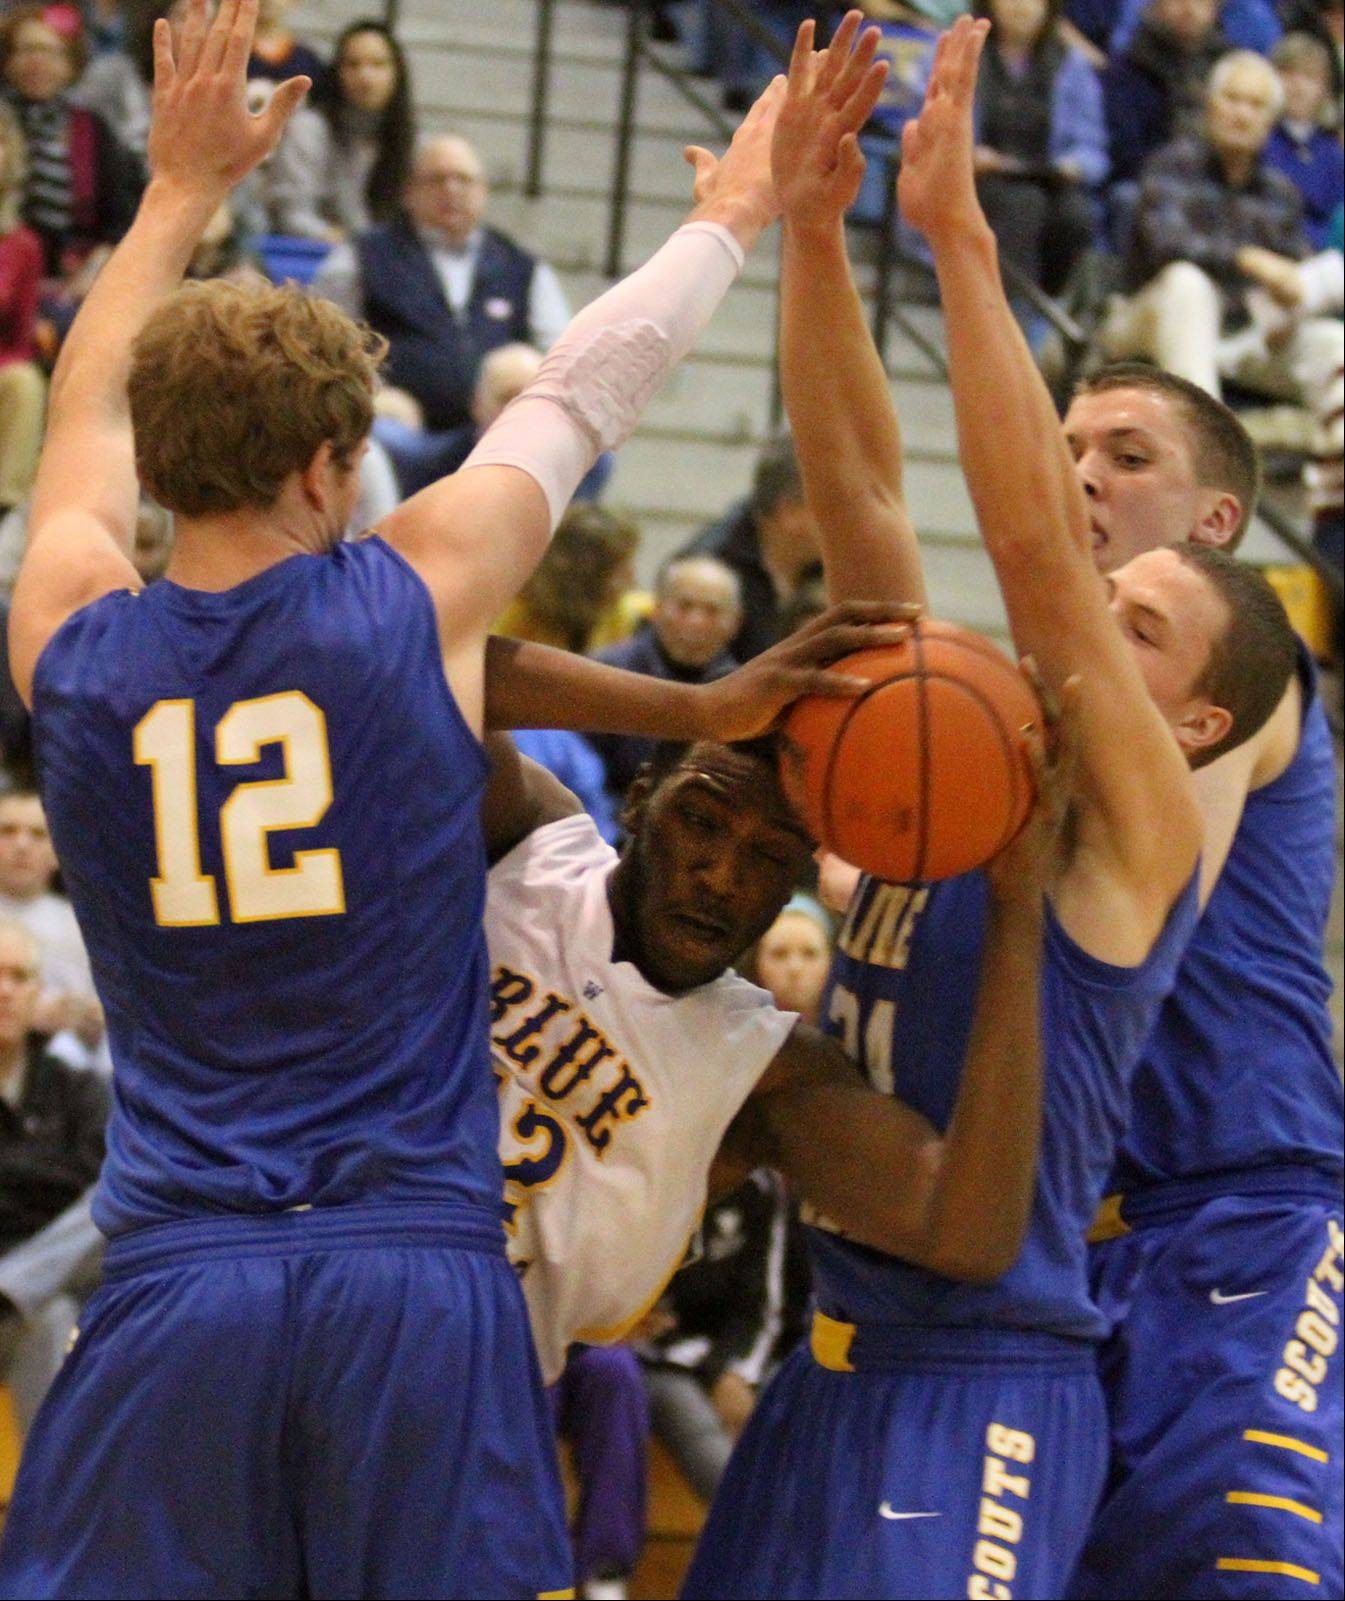 Images: Lake Forest vs. Warren, boys basketball